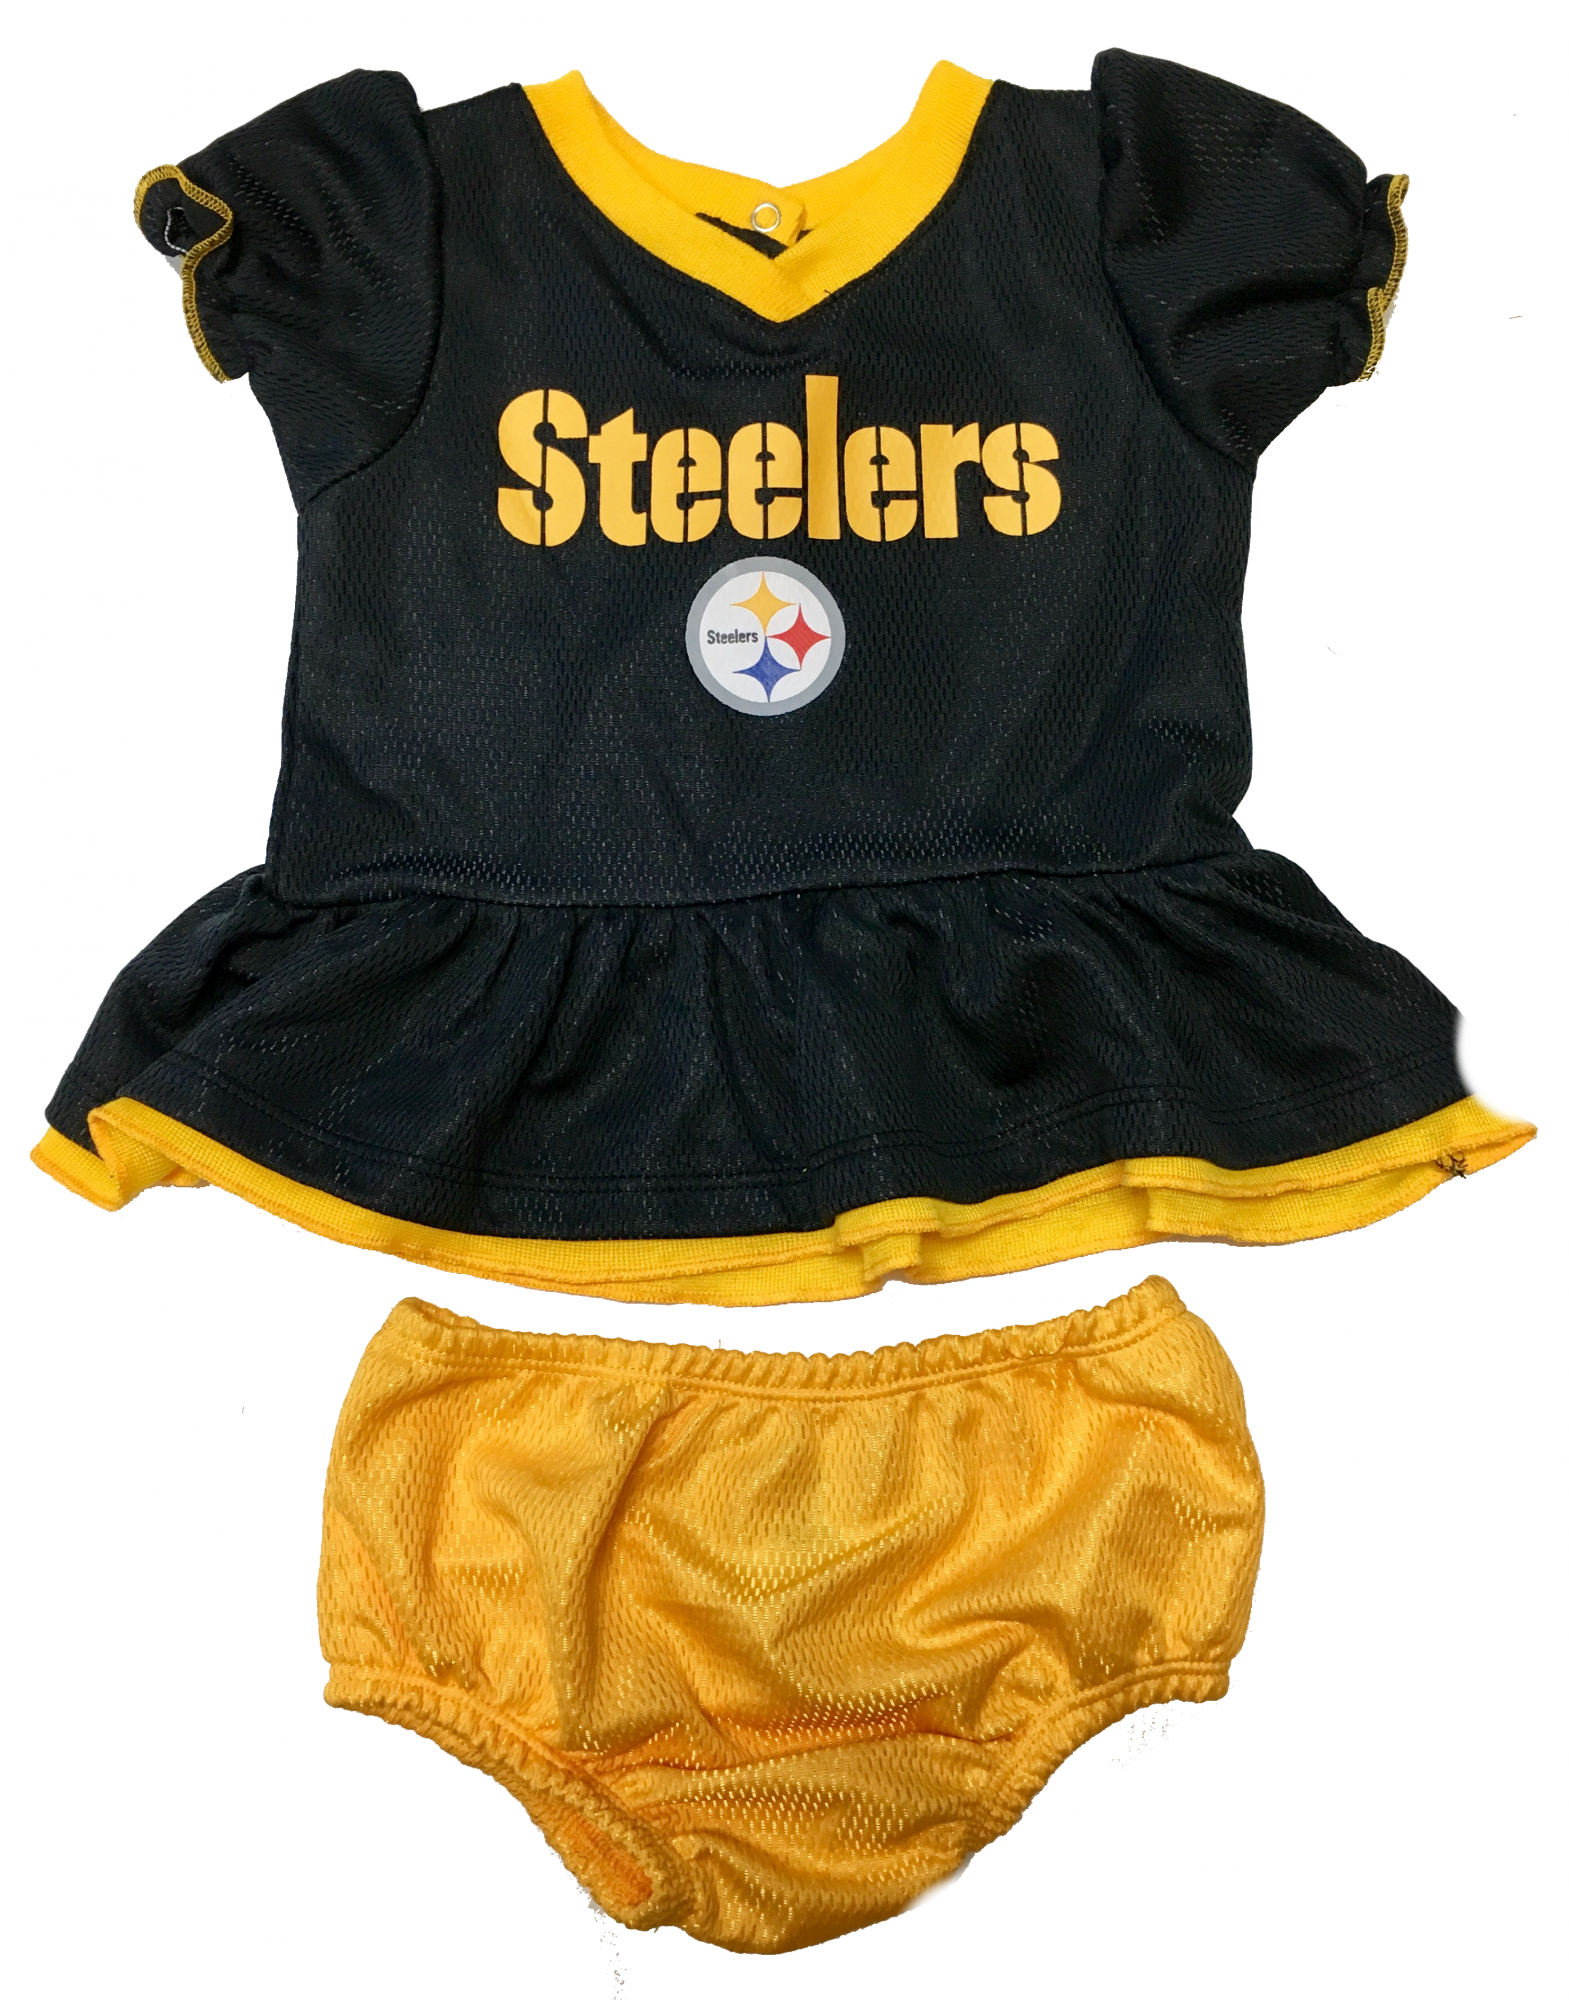 NFL-Steelers-baby-player-jersey-dress-back.PNG